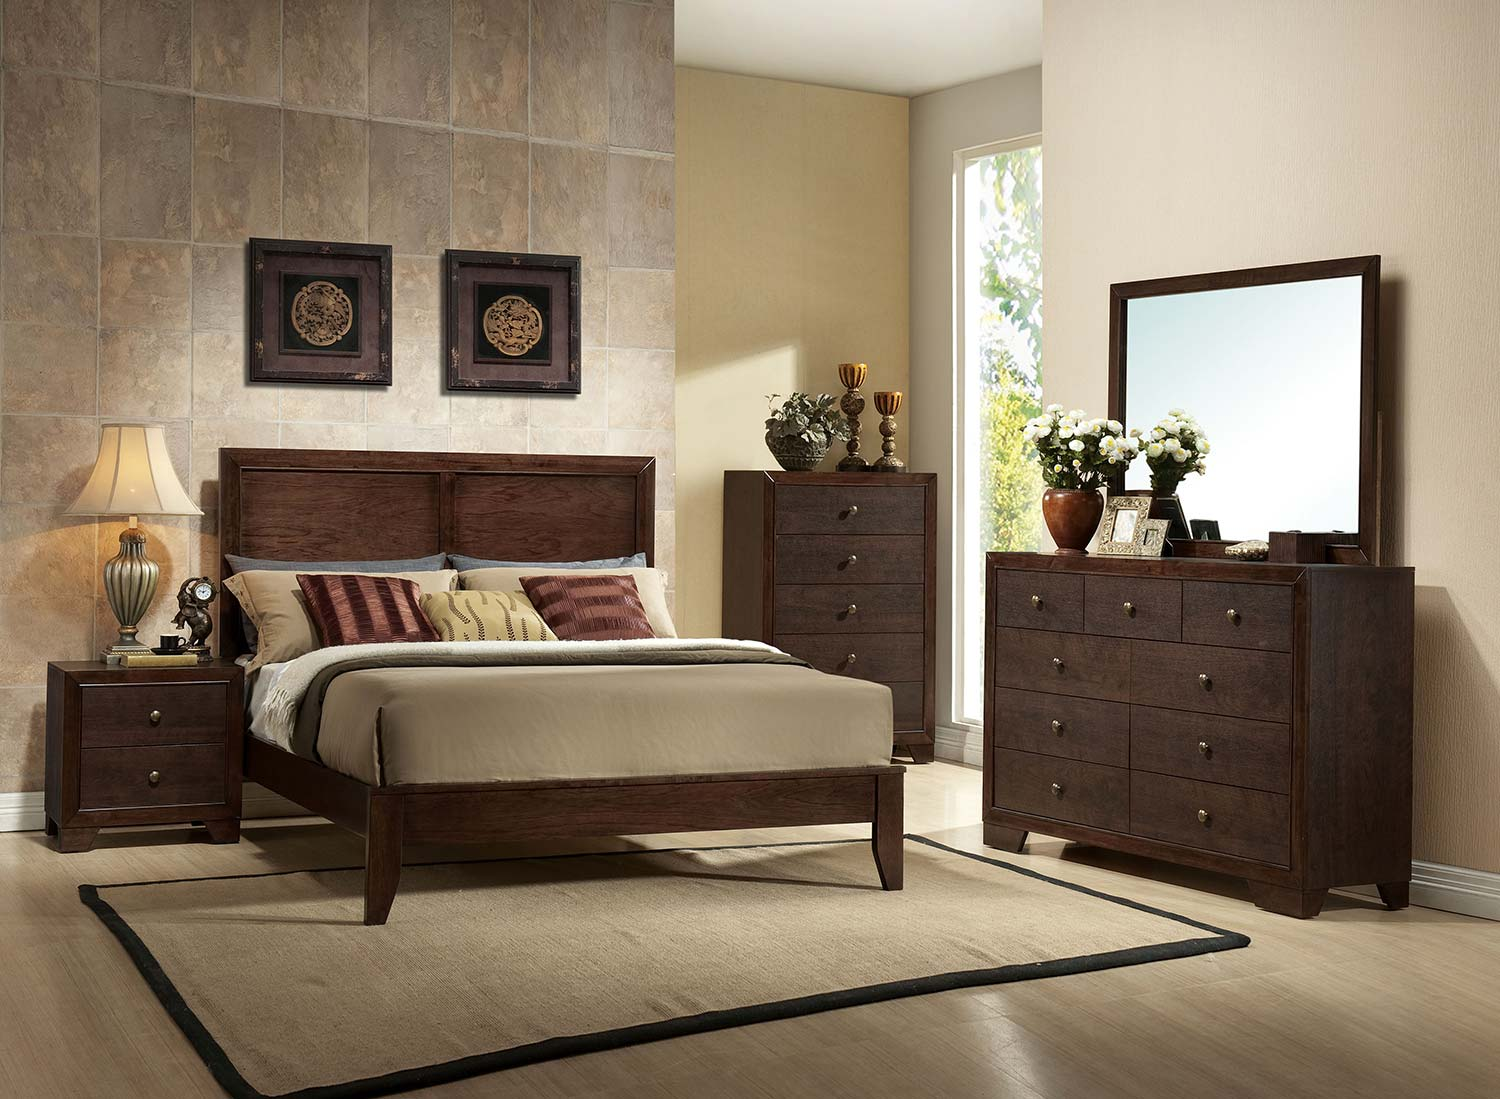 Acme Madison Bedroom Set - Espresso